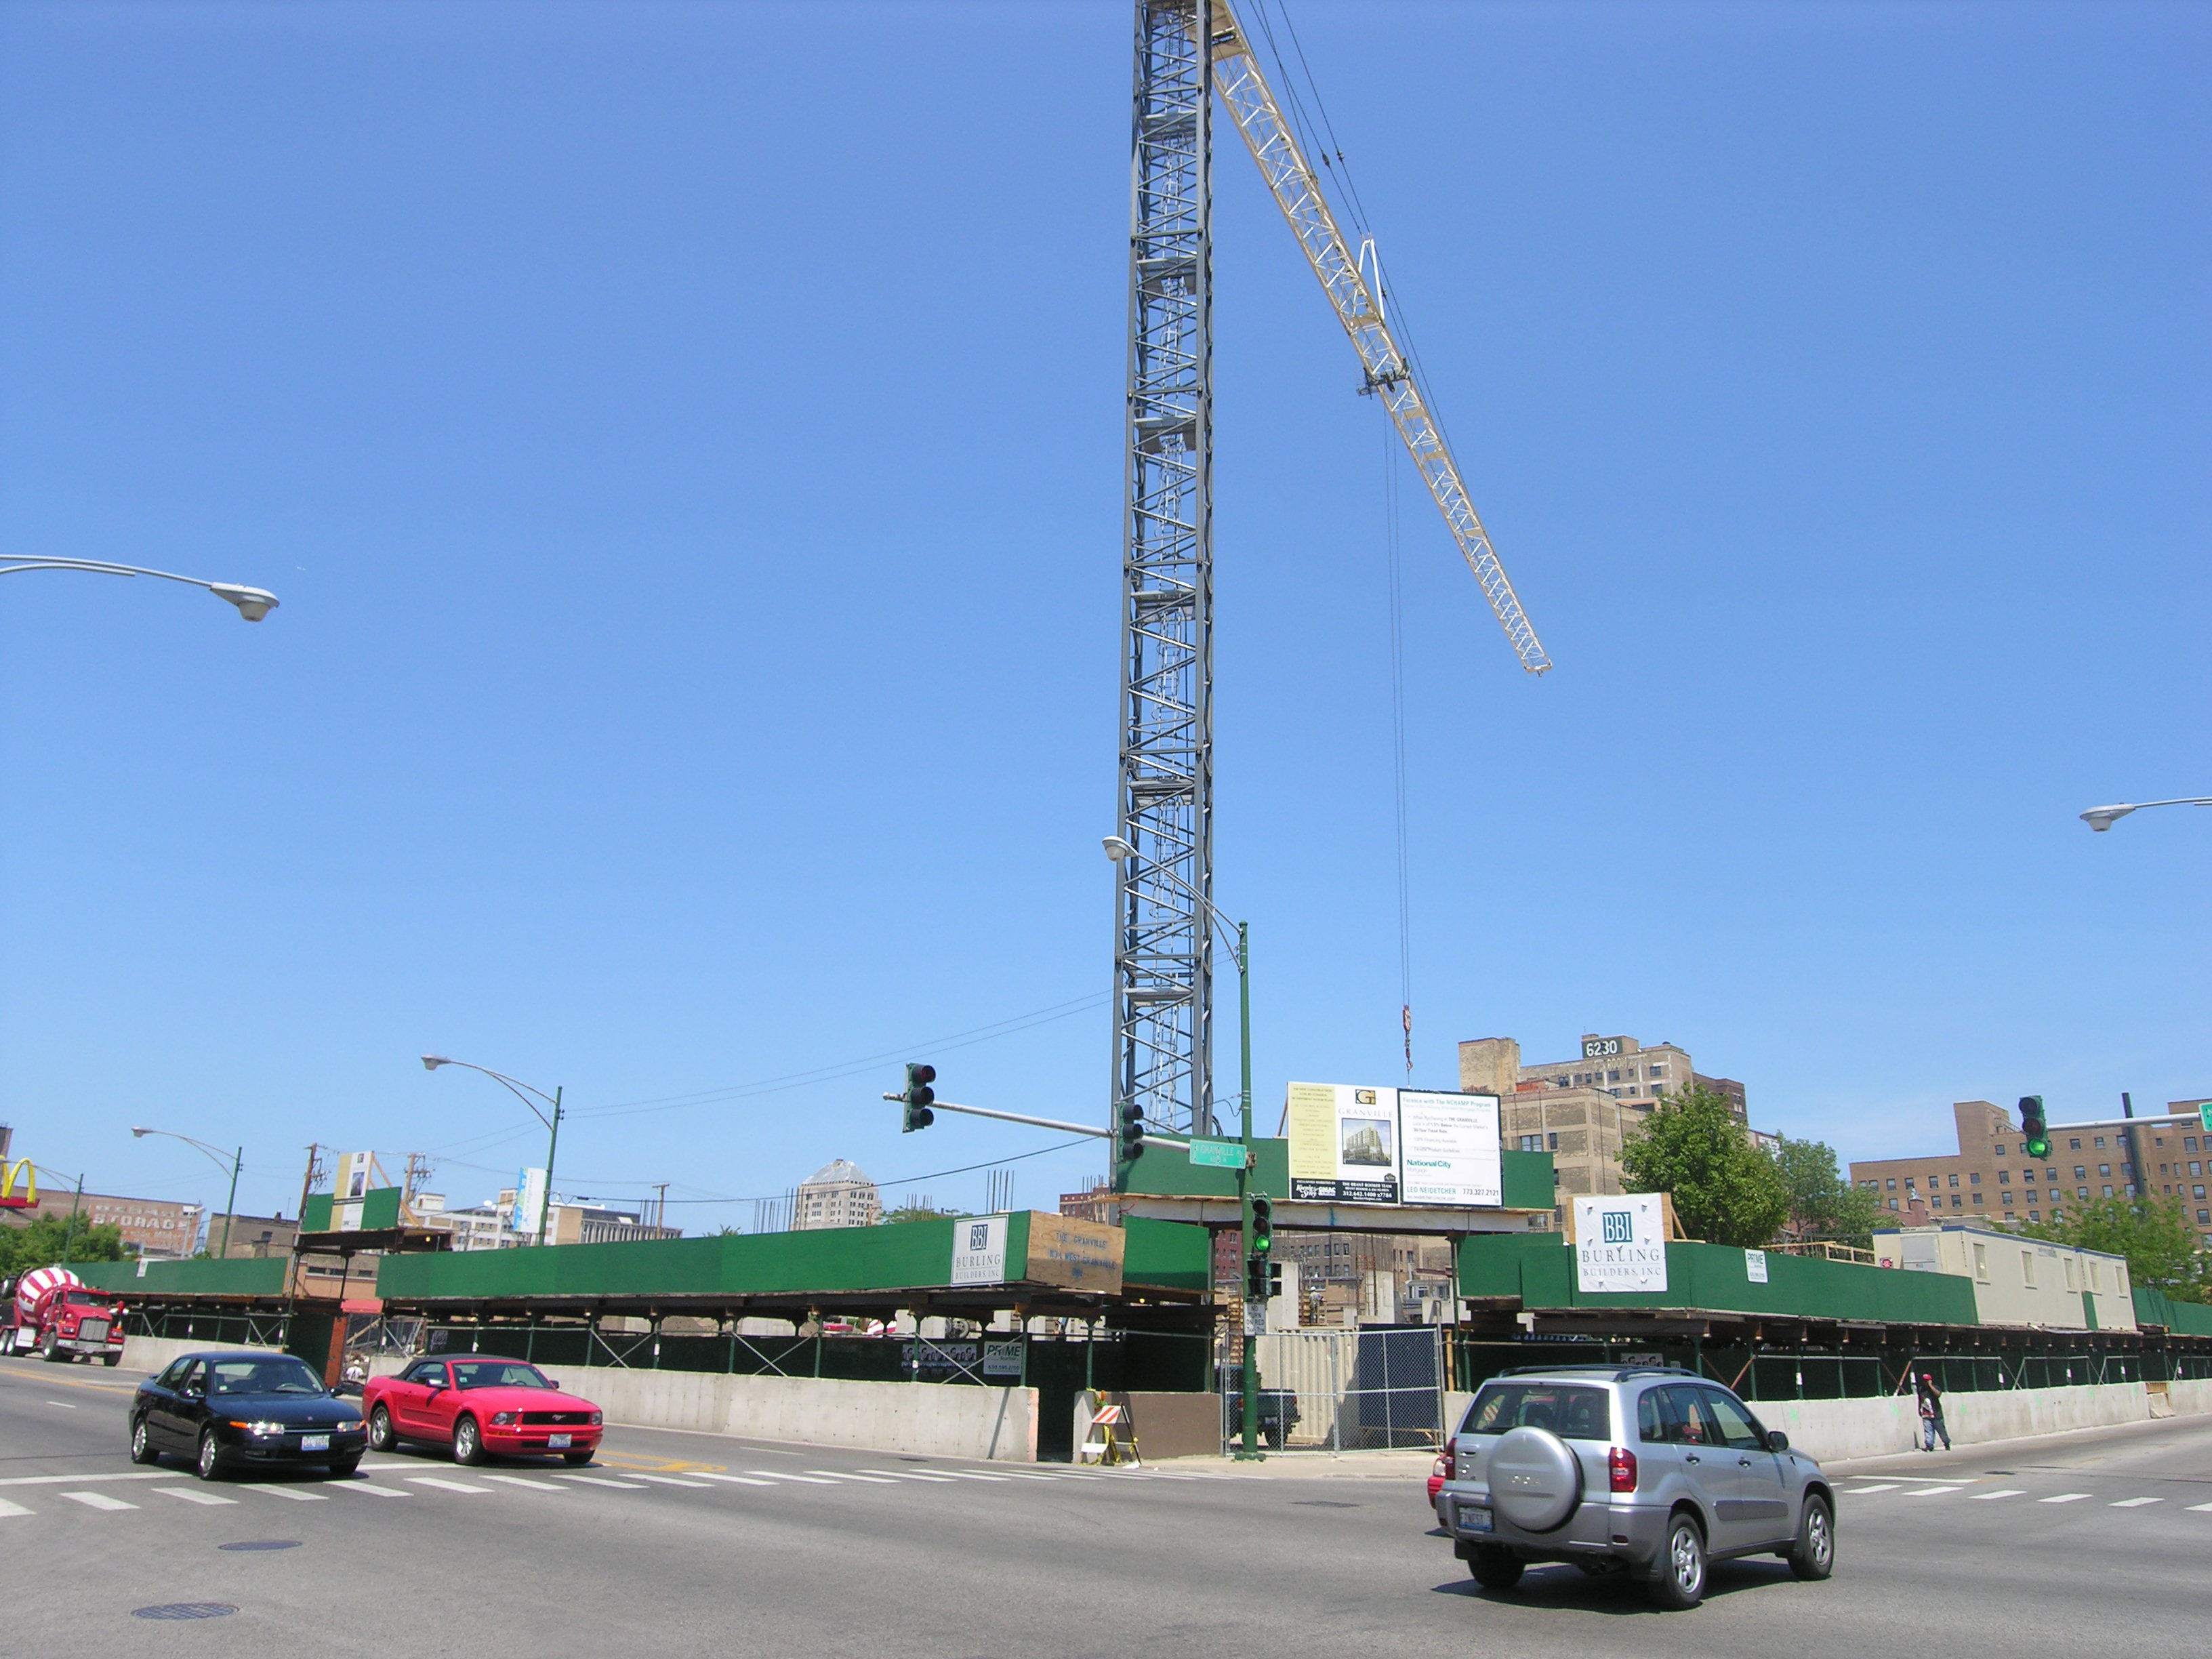 Construction update: The Granville in Chicago's Edgewater neighborhood